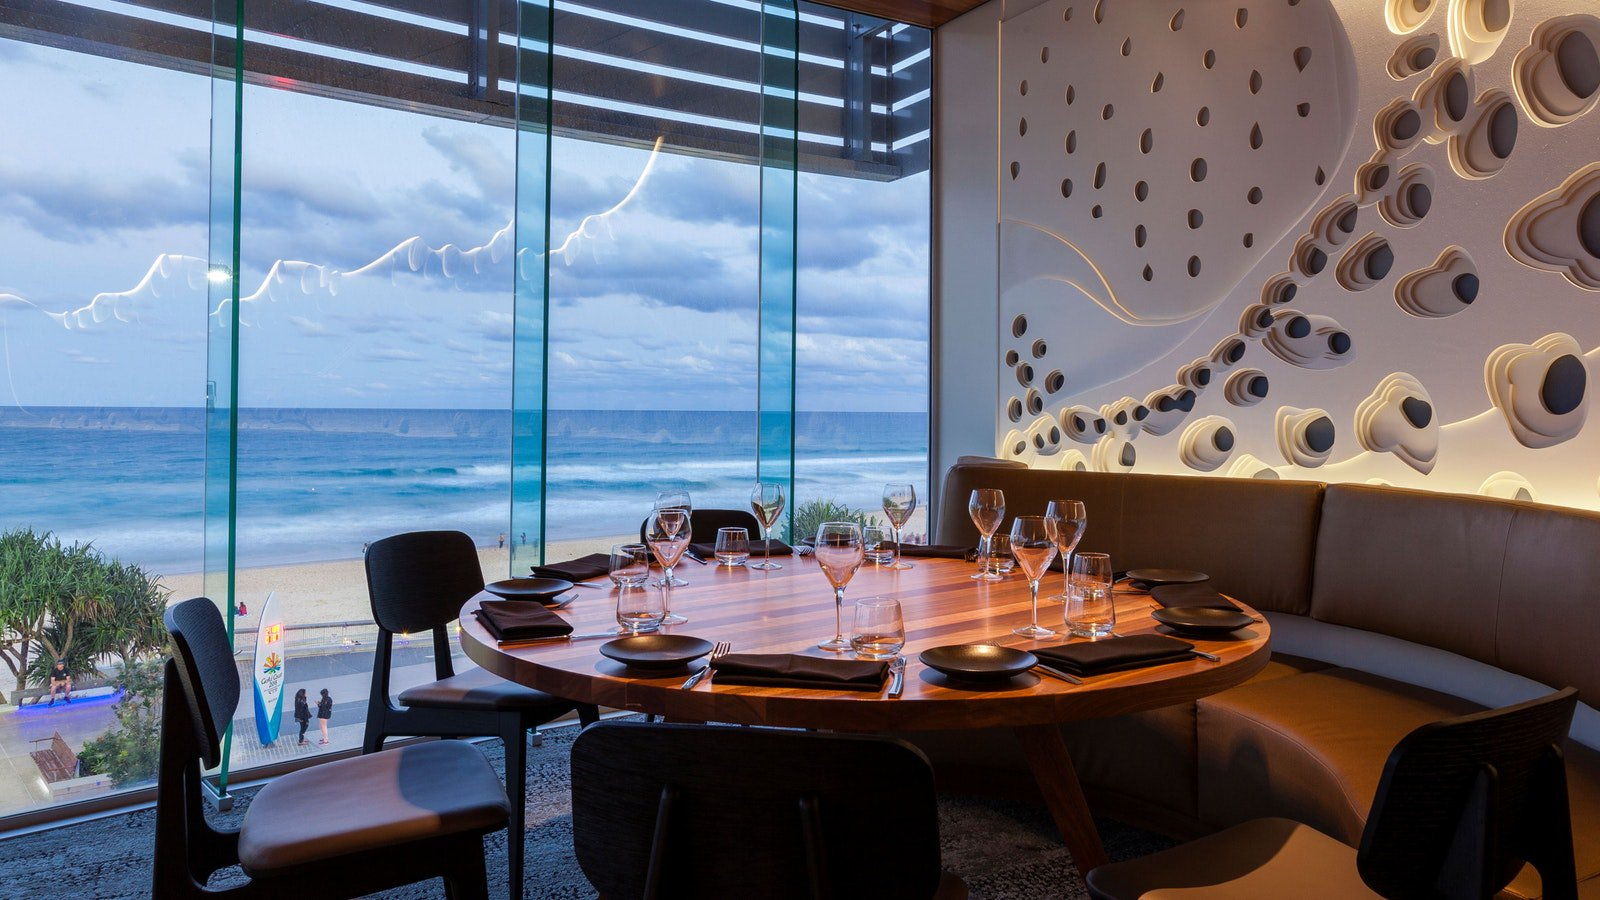 Beach front dining with unintrupted ocean views